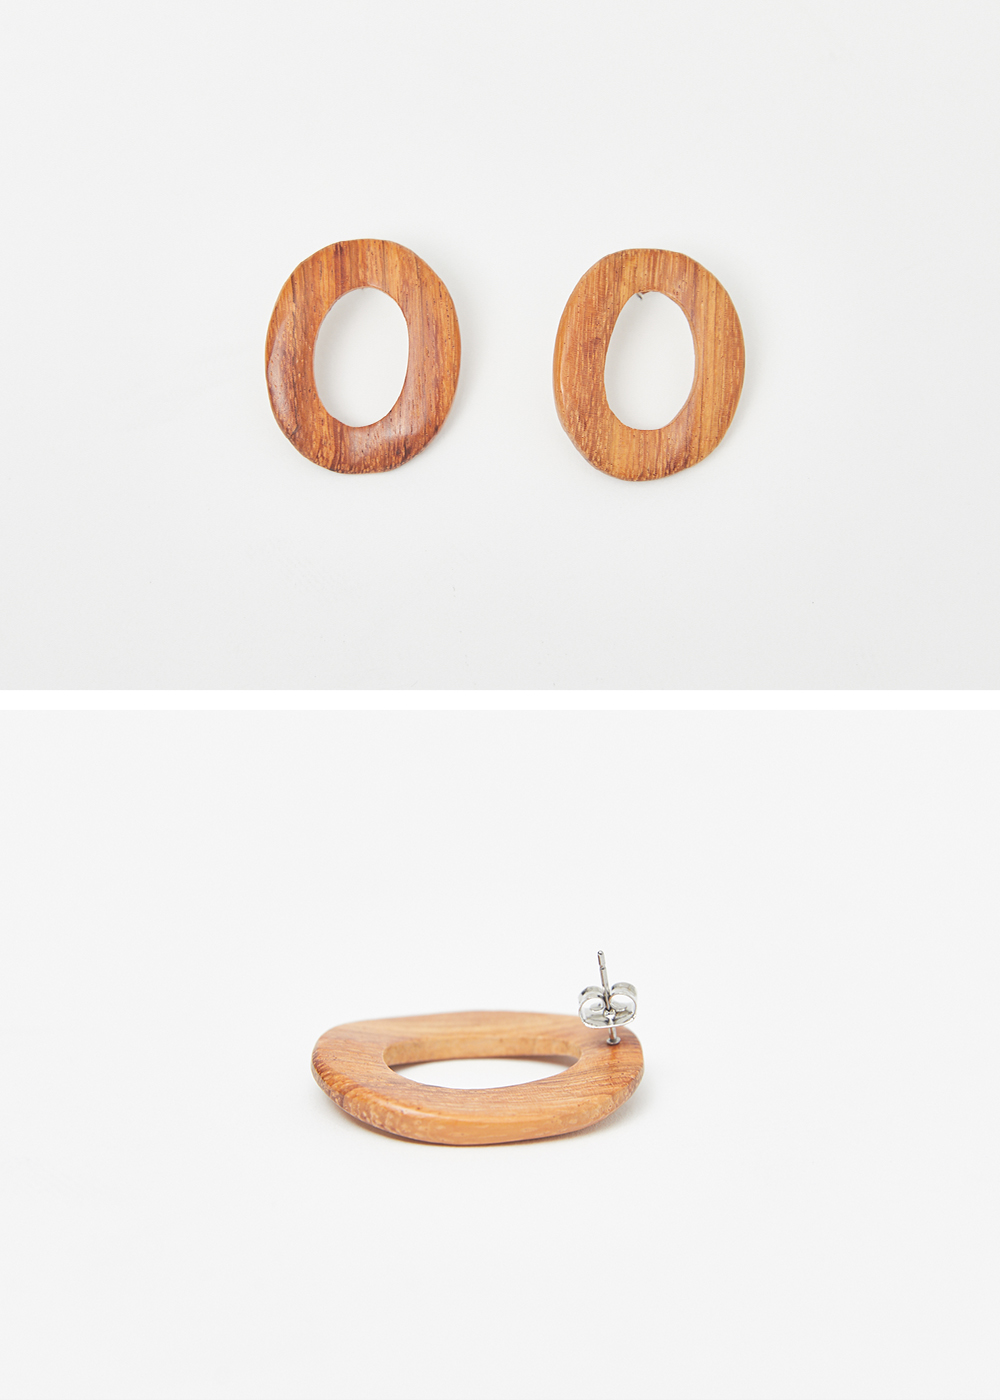 Oval wood ring